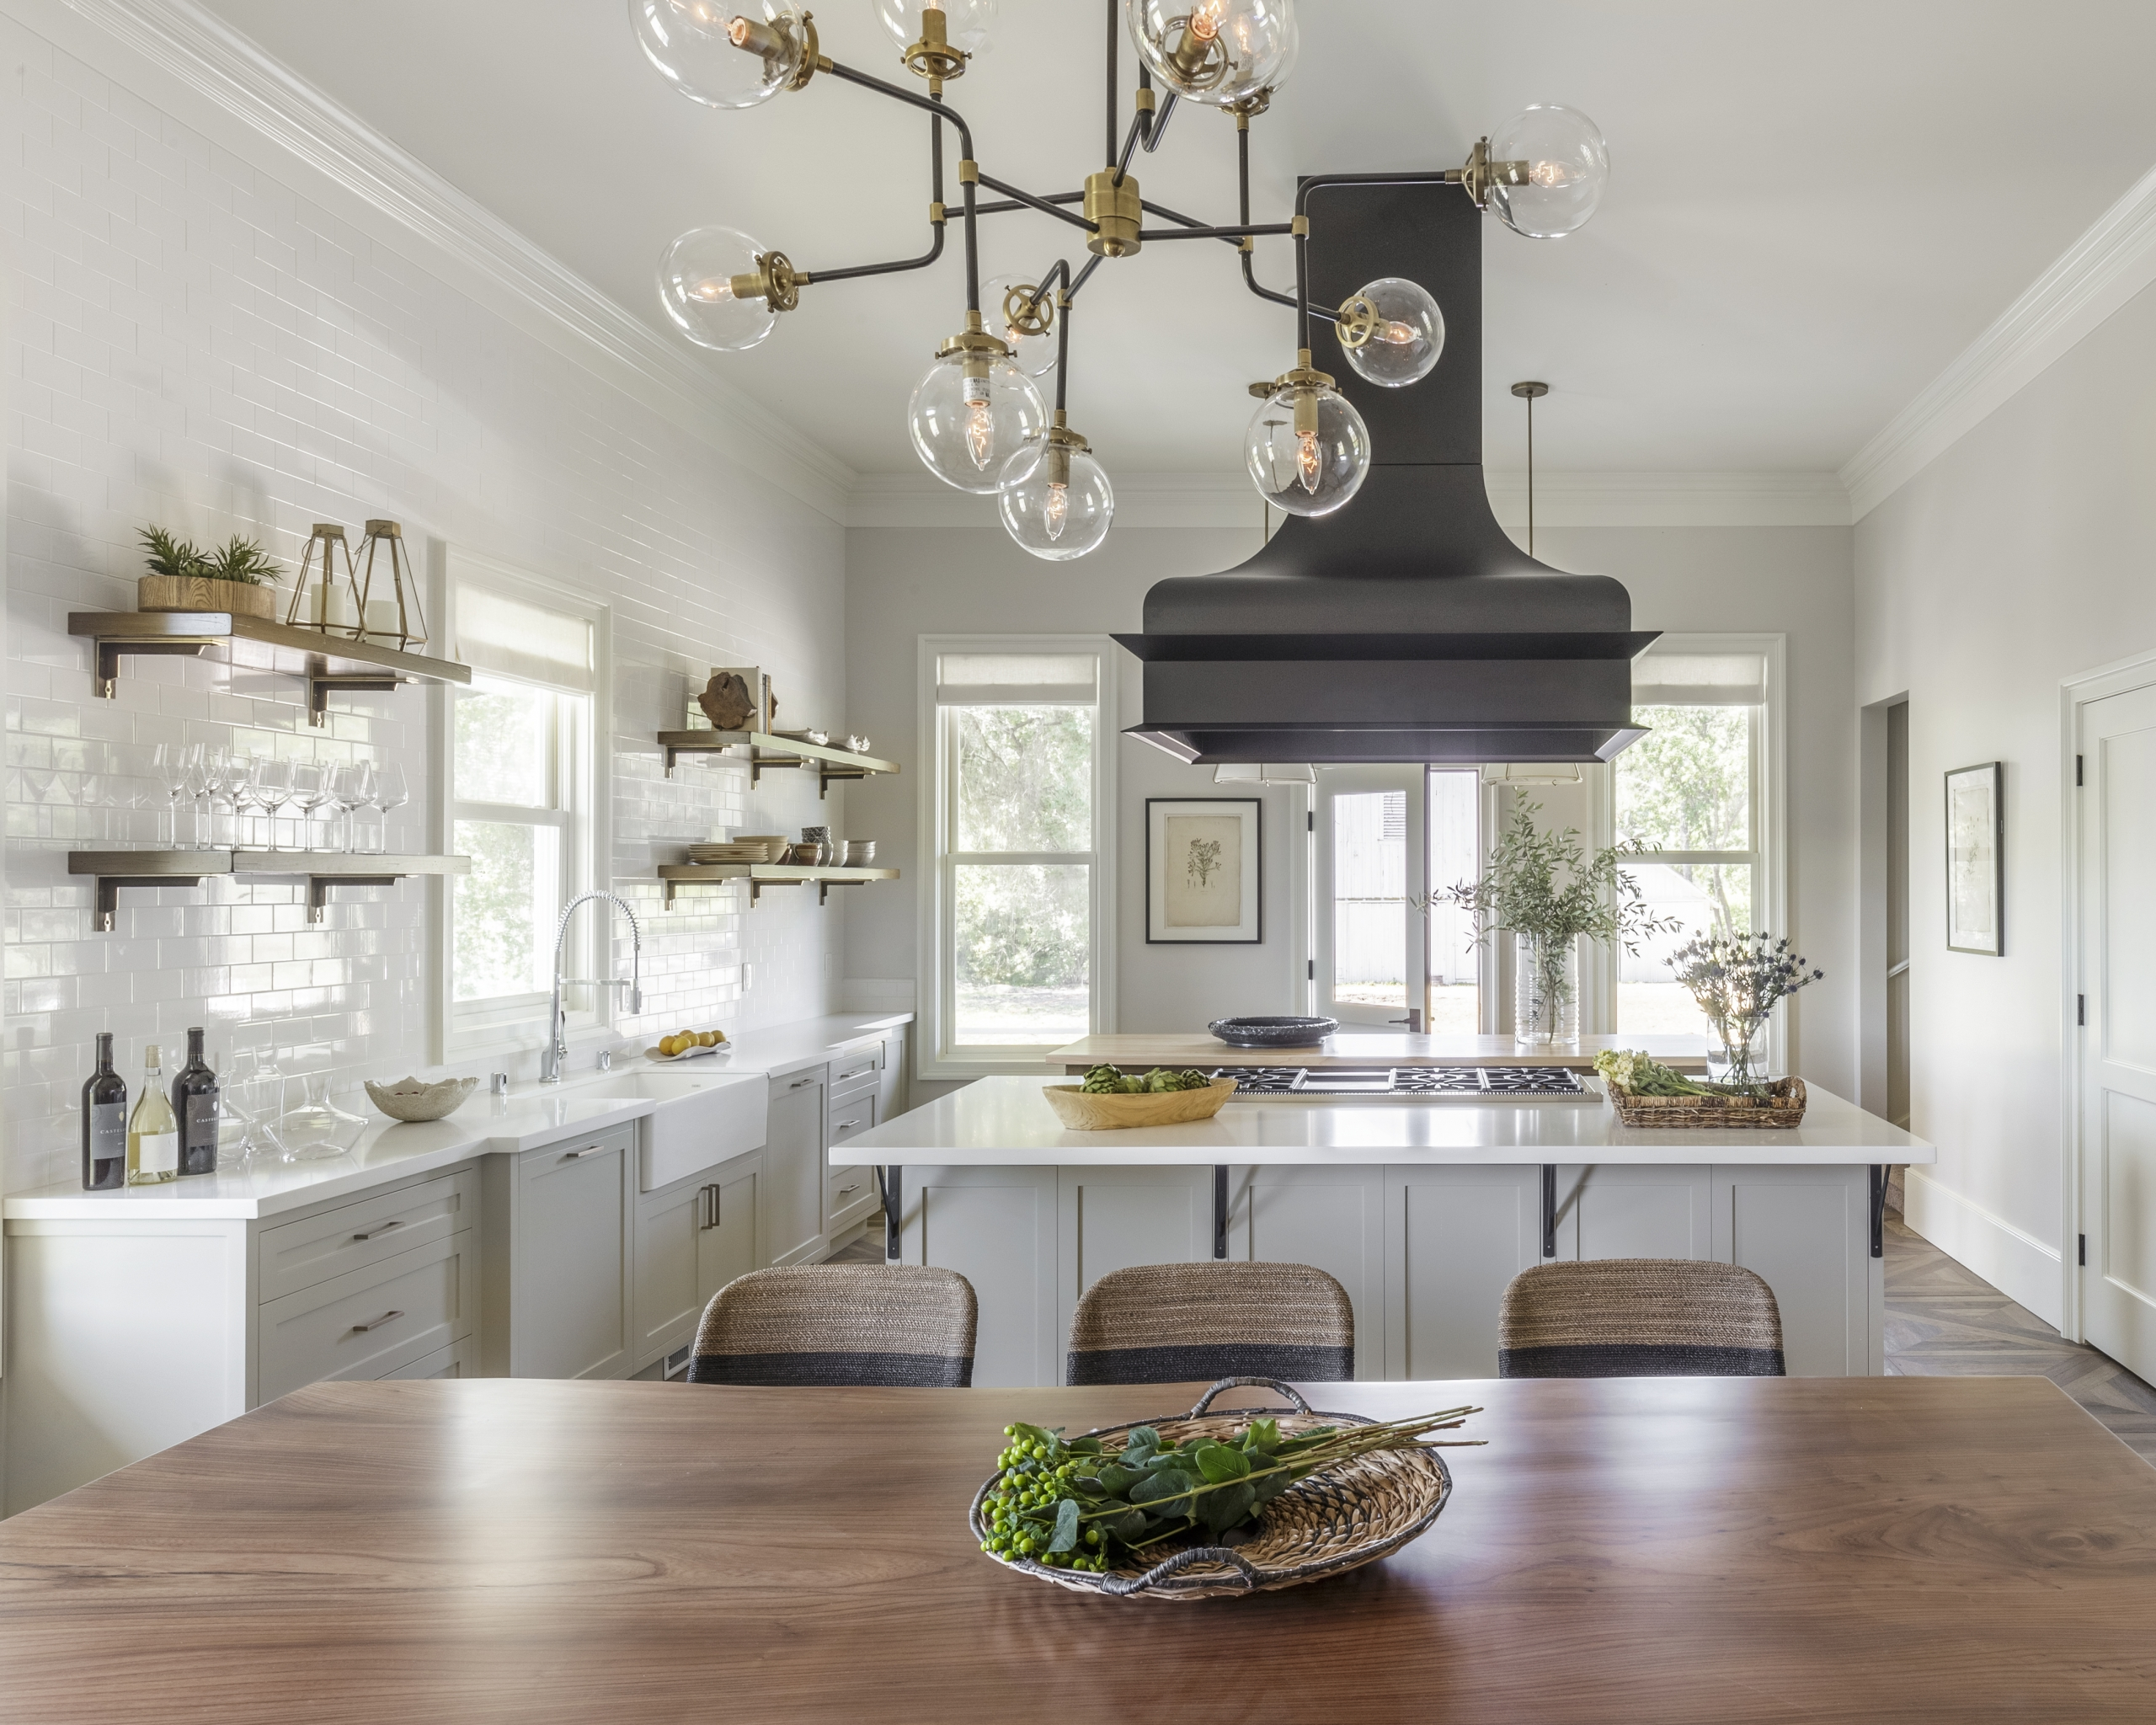 Kitchen with dining table, chandelier and island